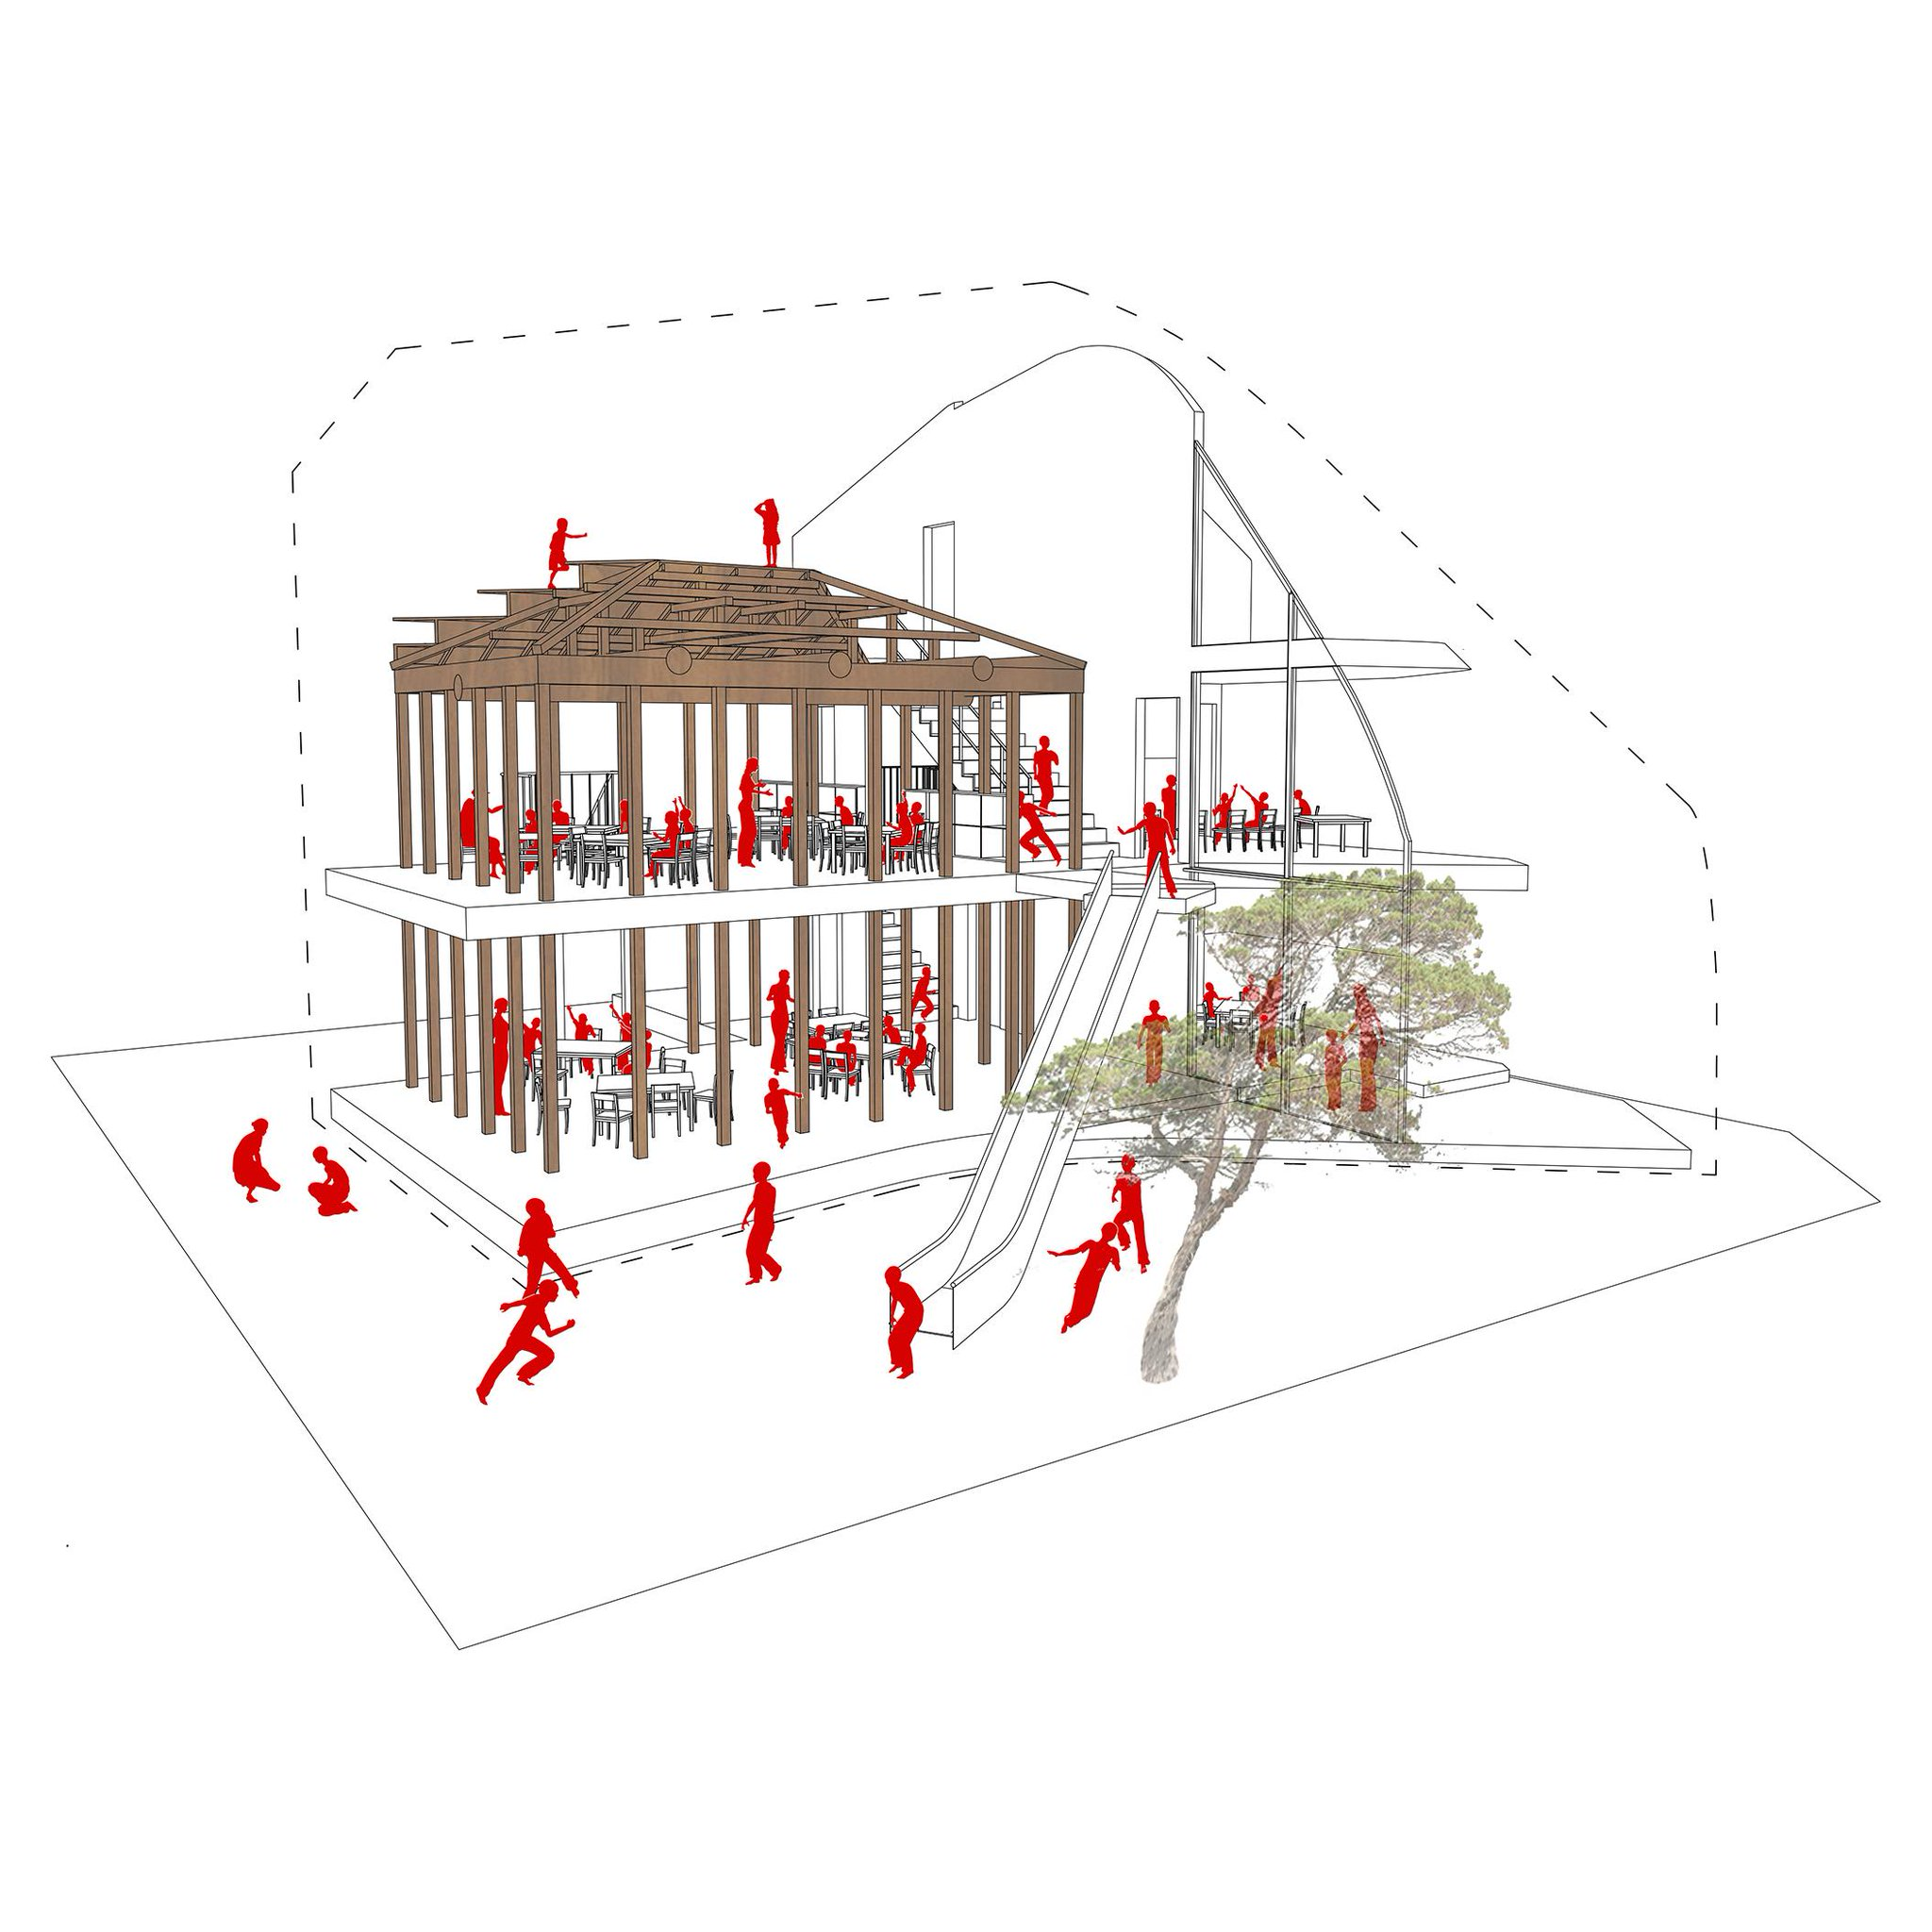 architecture section diagram structure of chromosome with mad architects on twitter quotelevation and